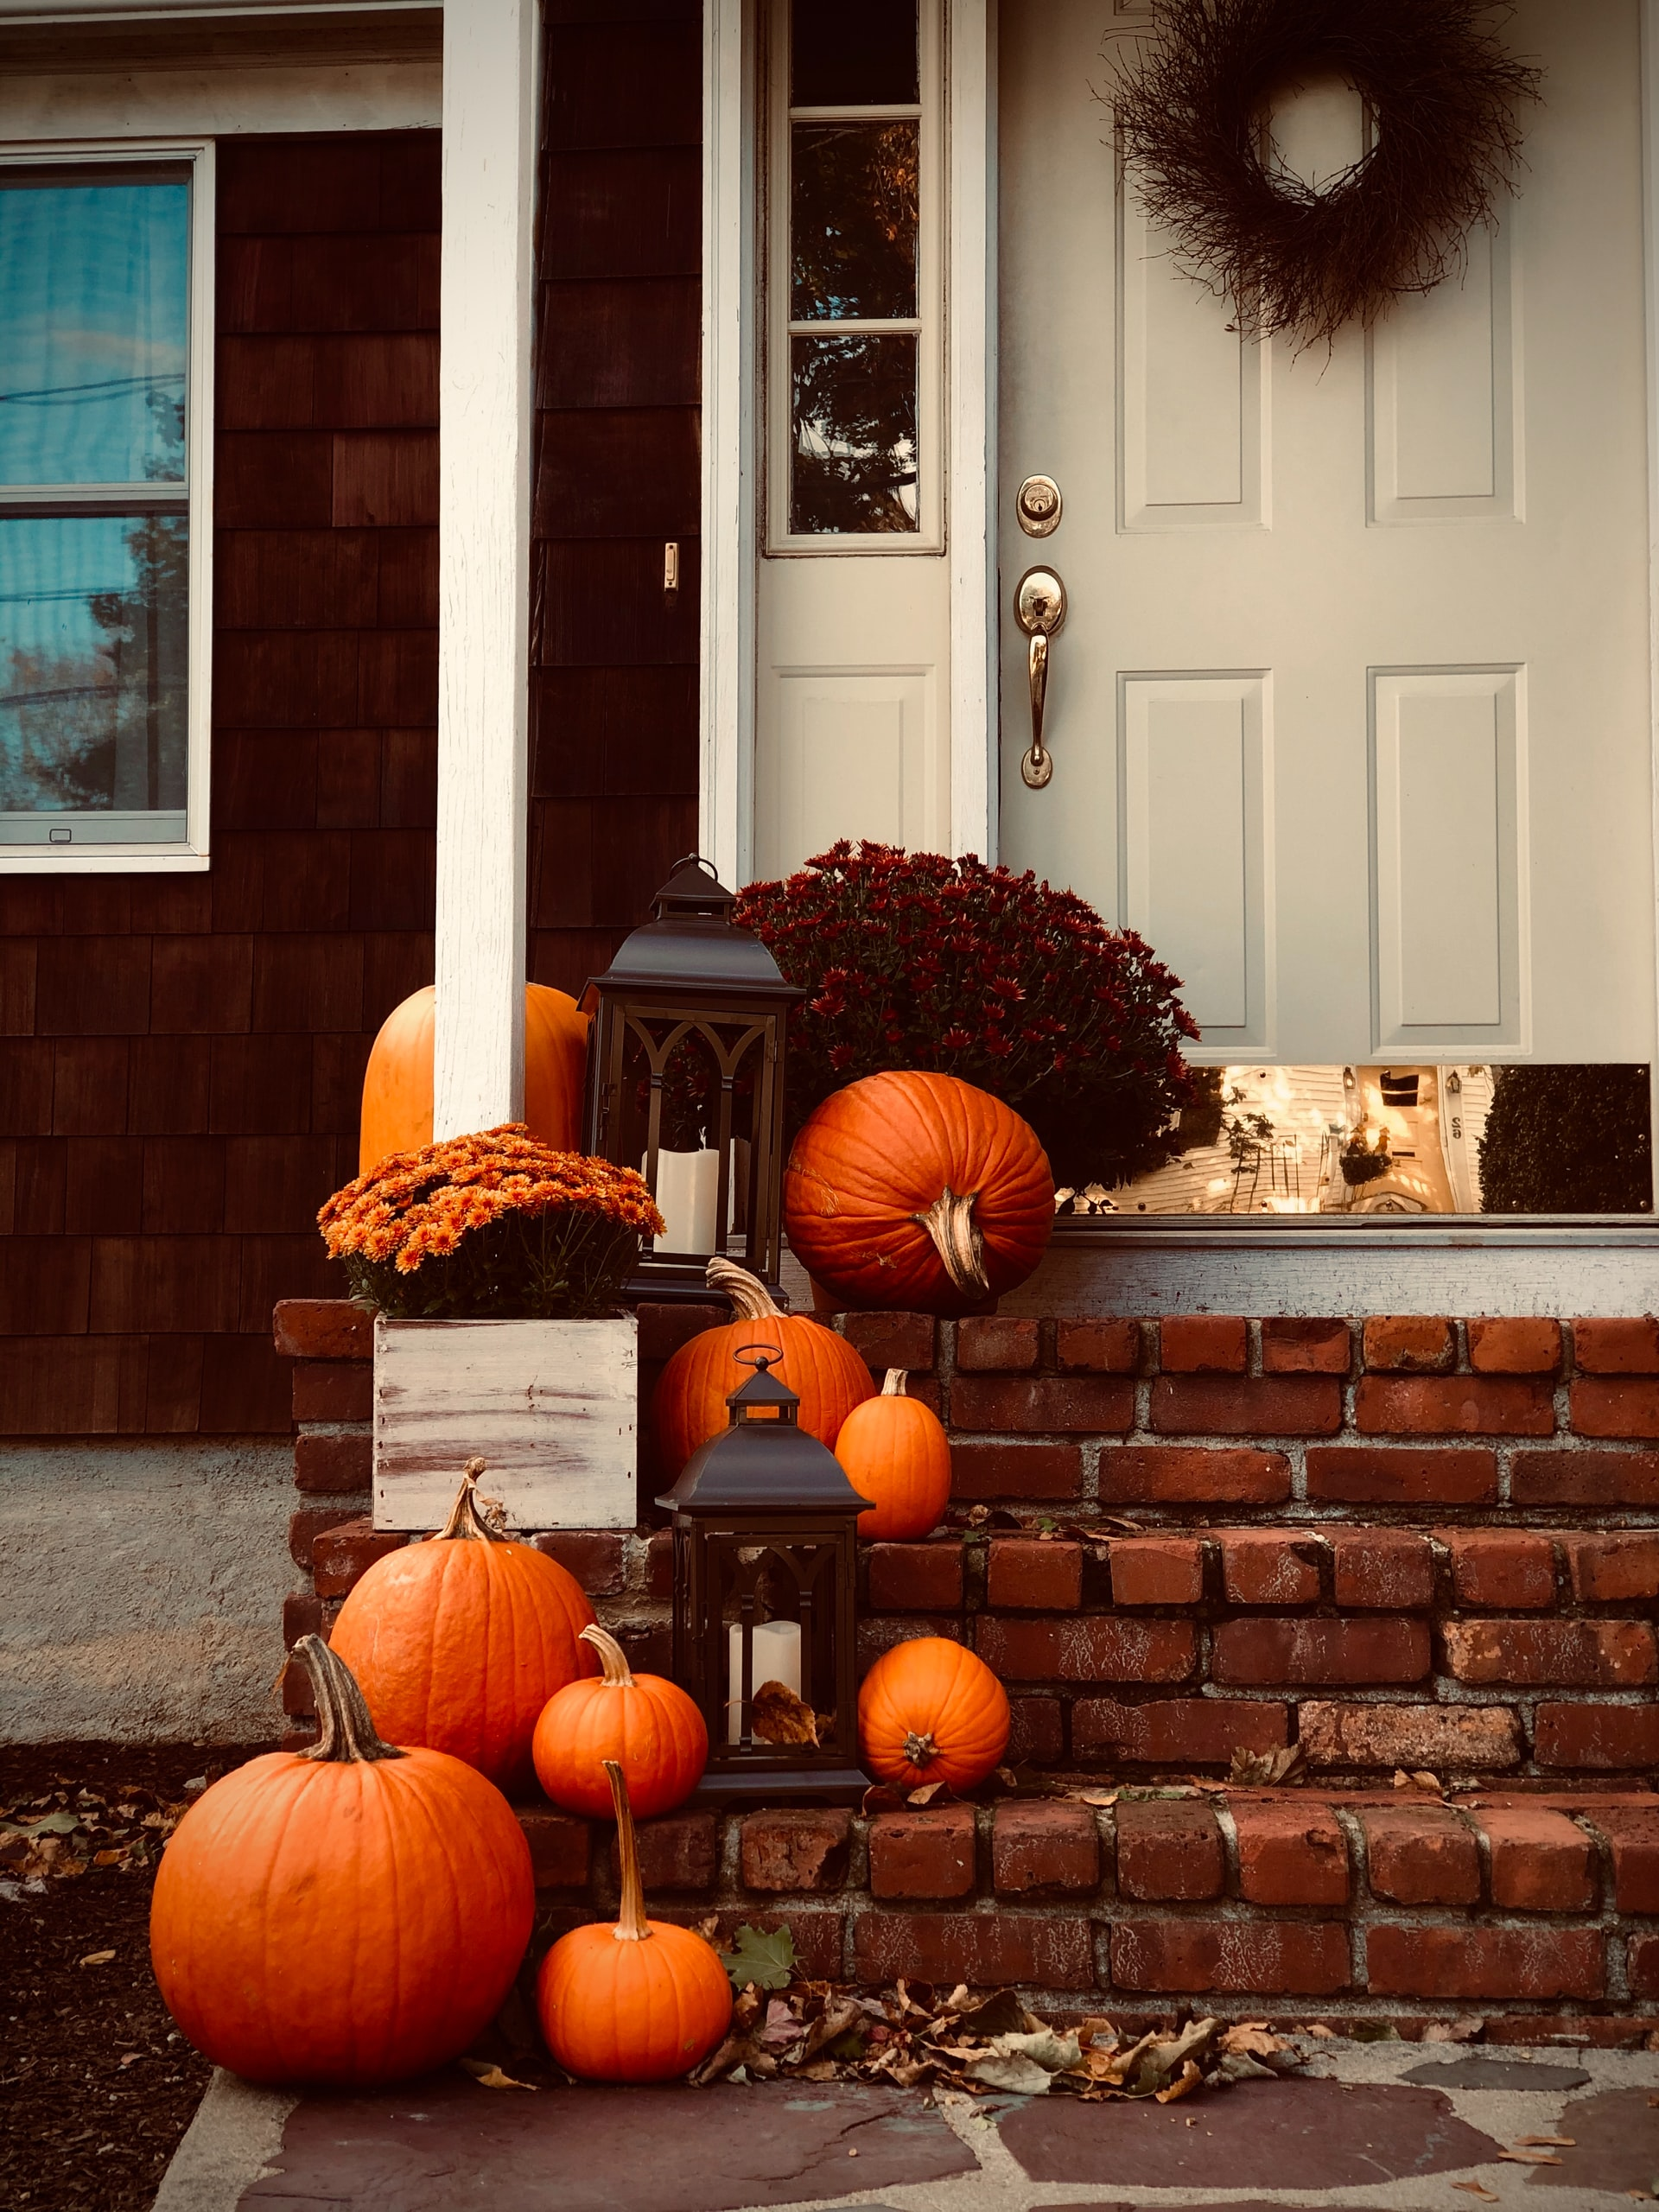 Halloween house decorations with pumpkins